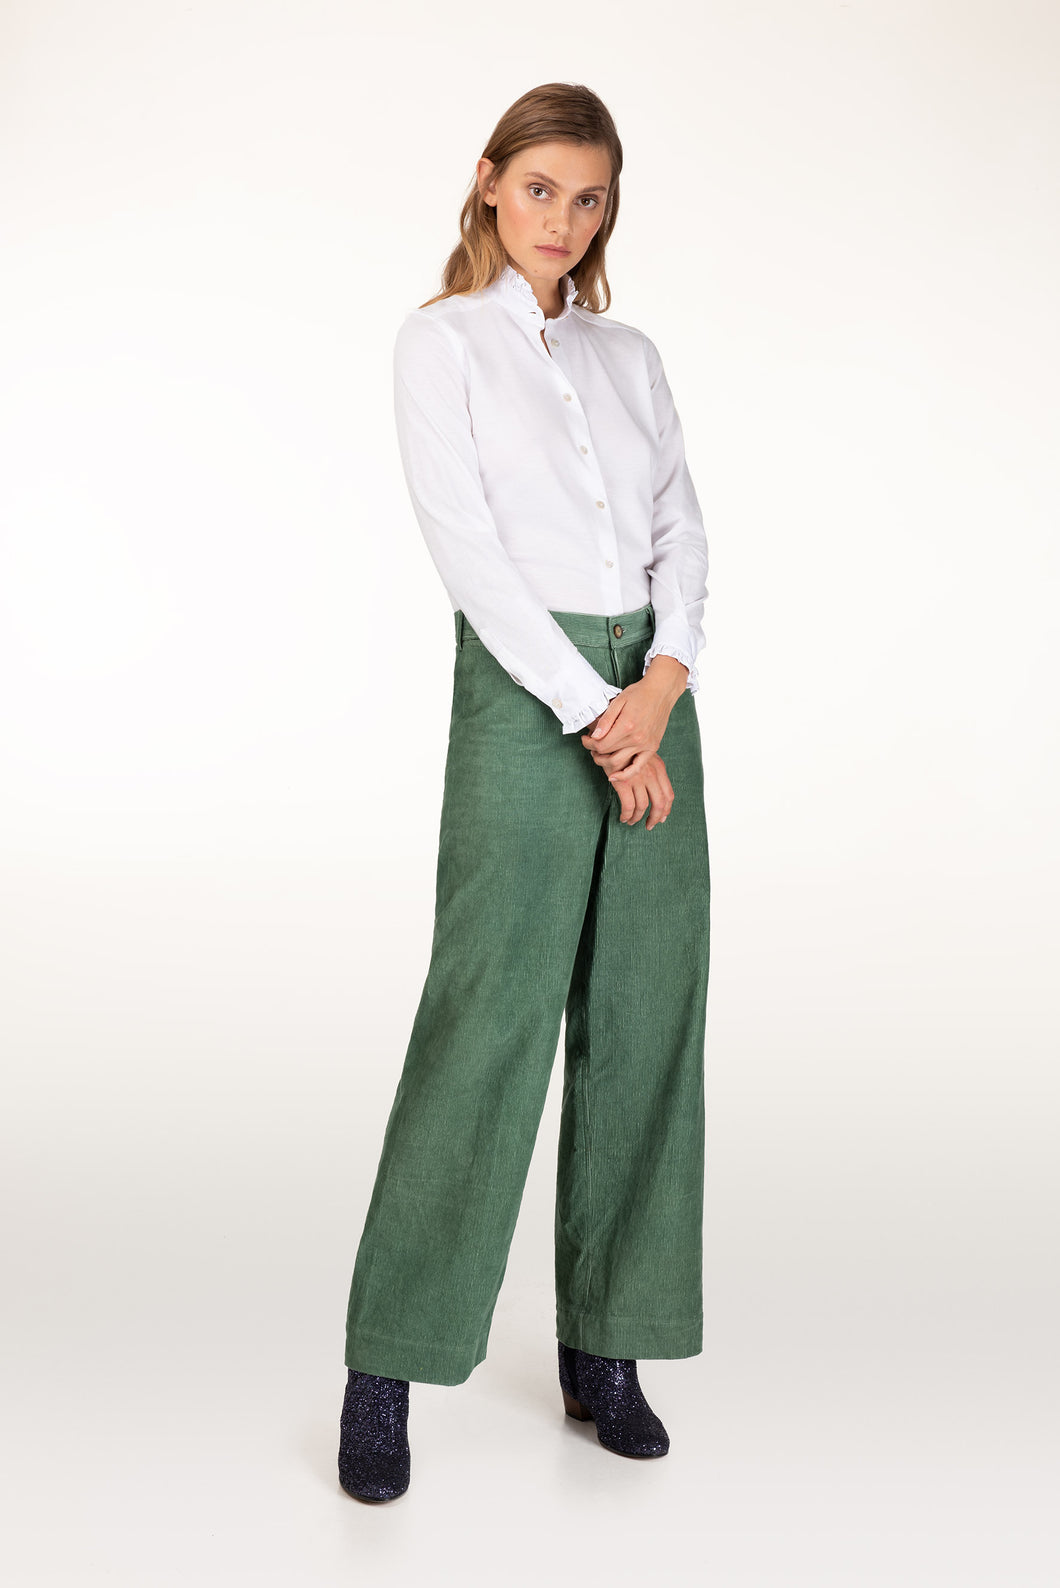 Sailor green cord pant